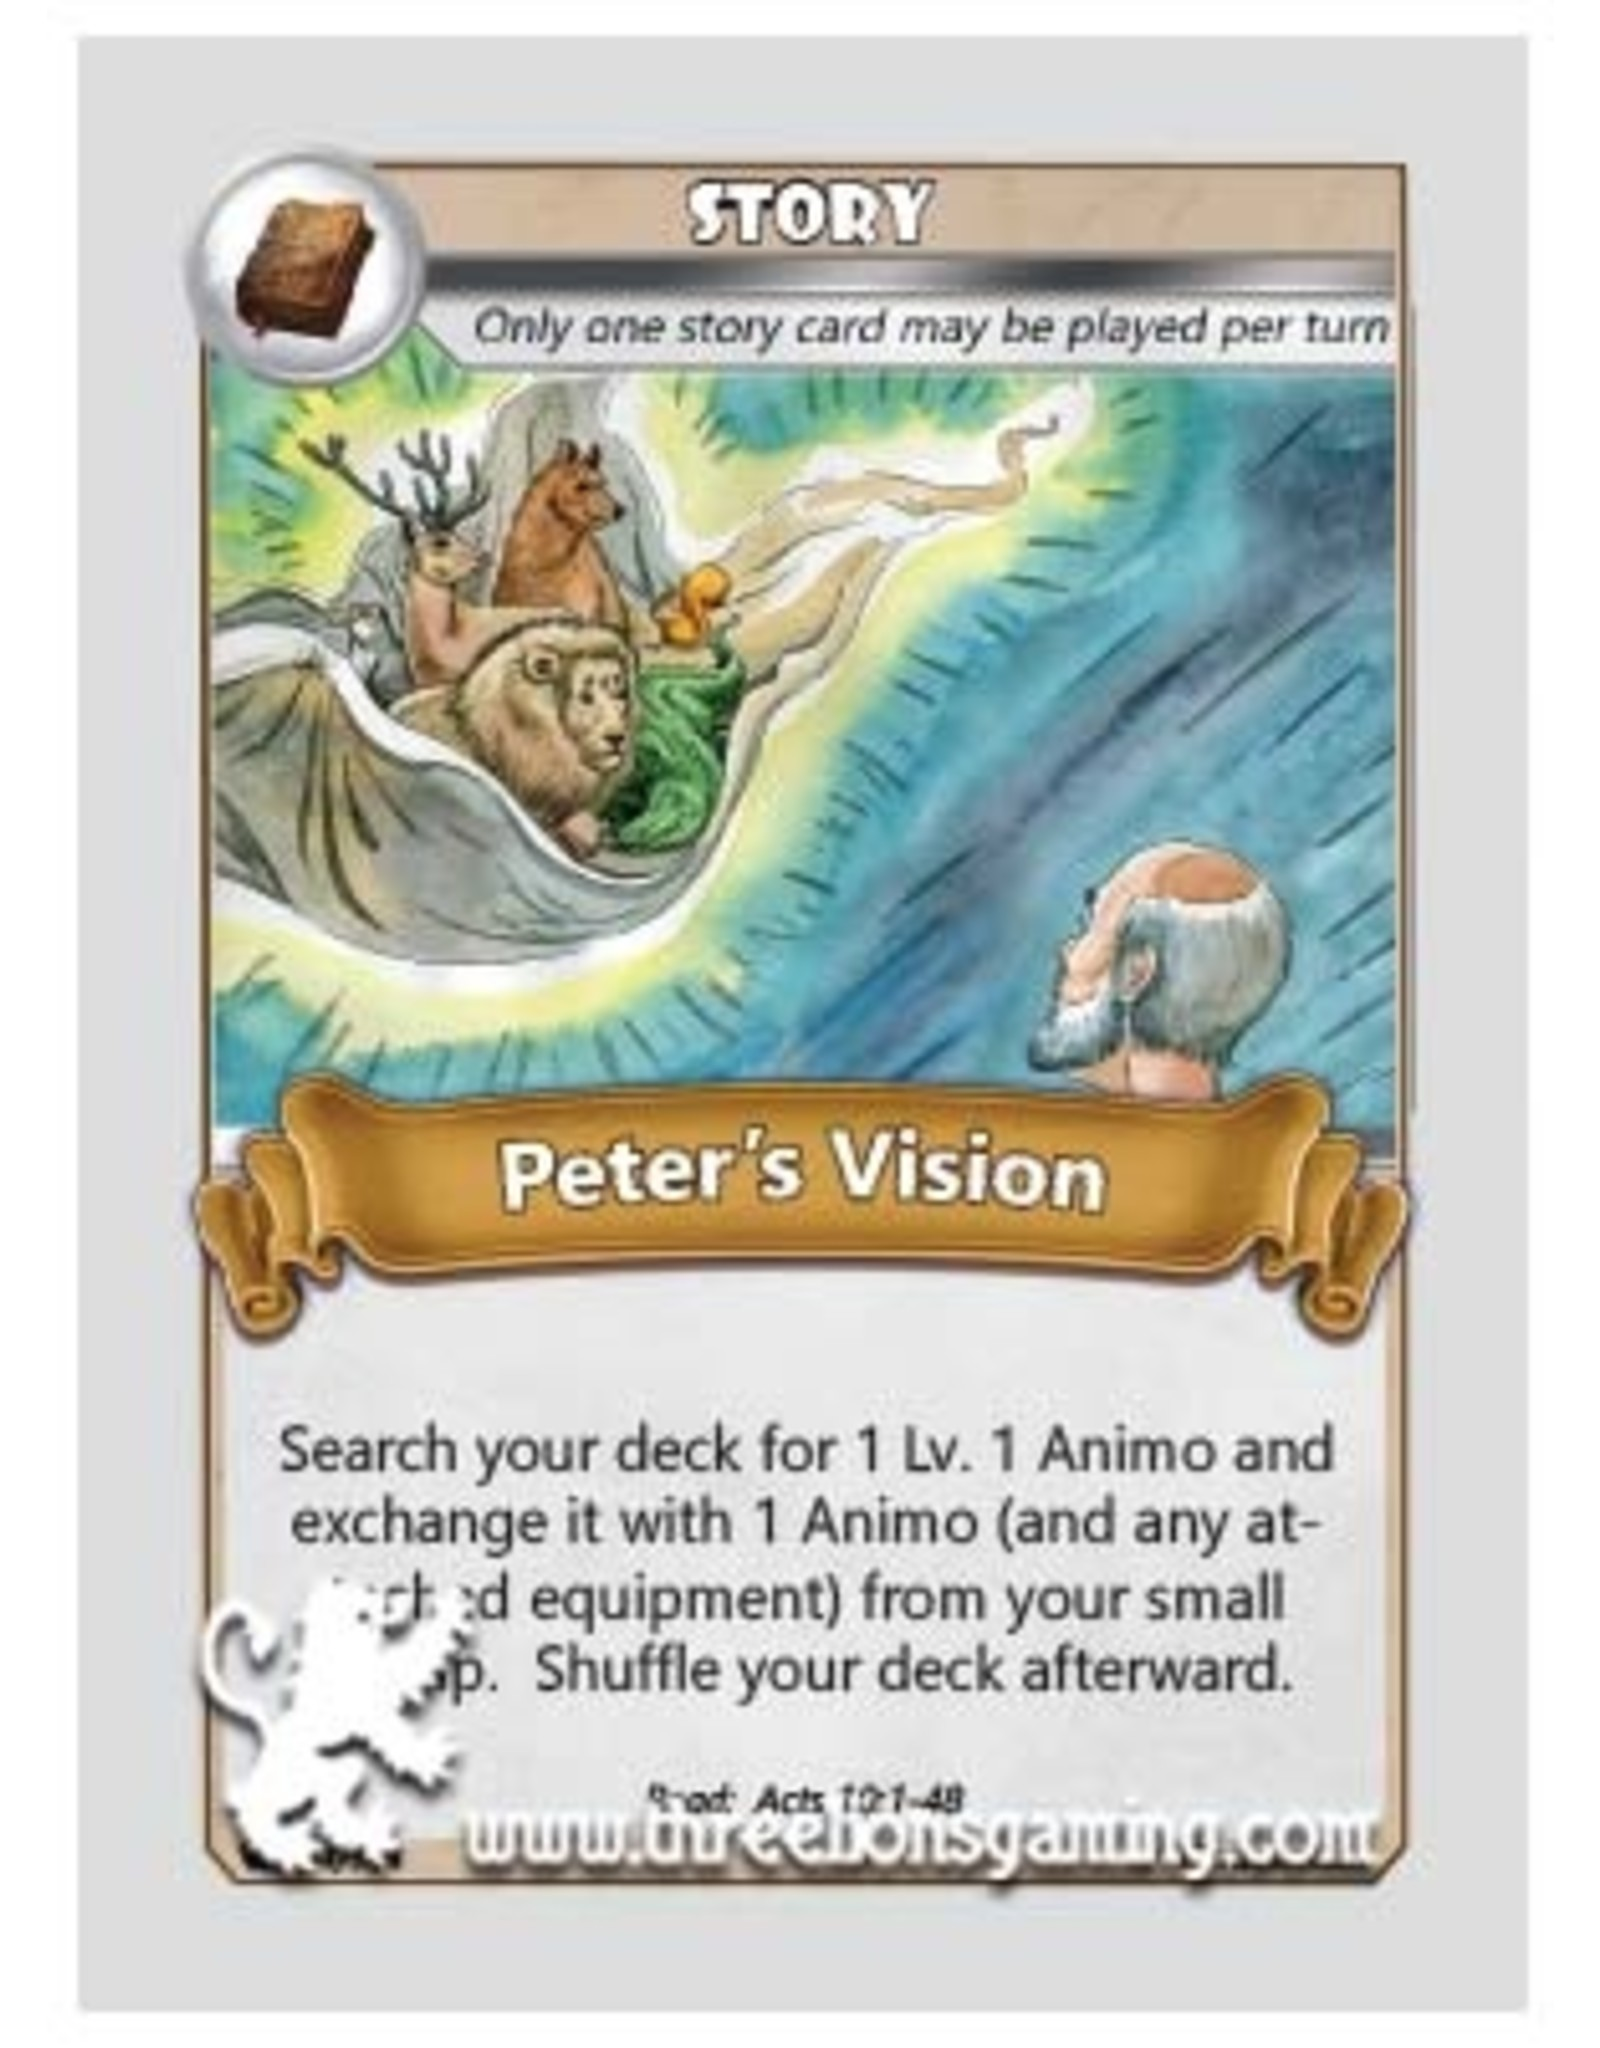 CT: Peter's Vision